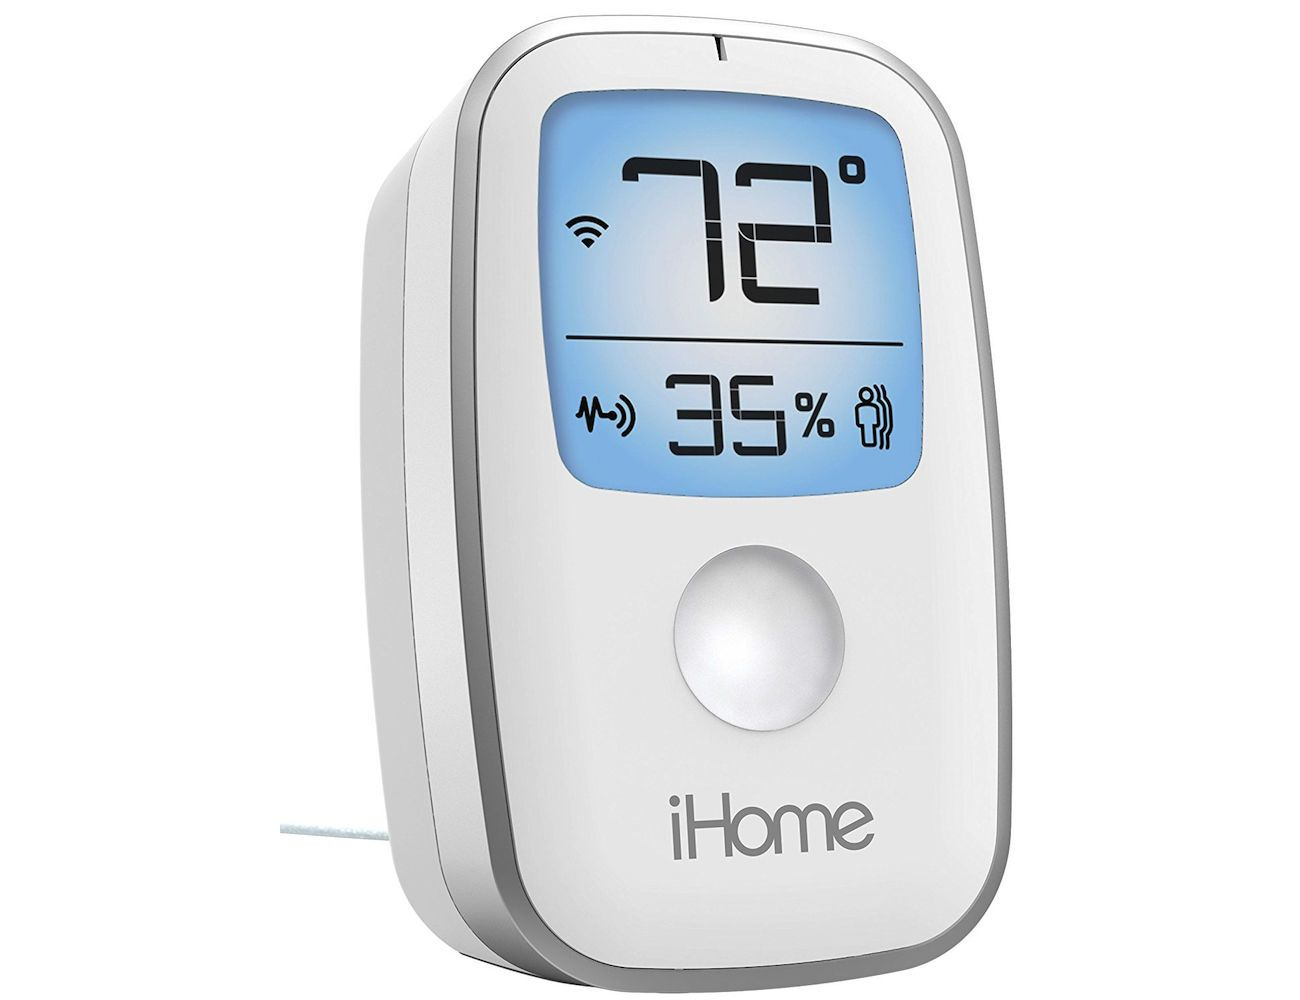 iHome iSS50 Smart Home Monitor